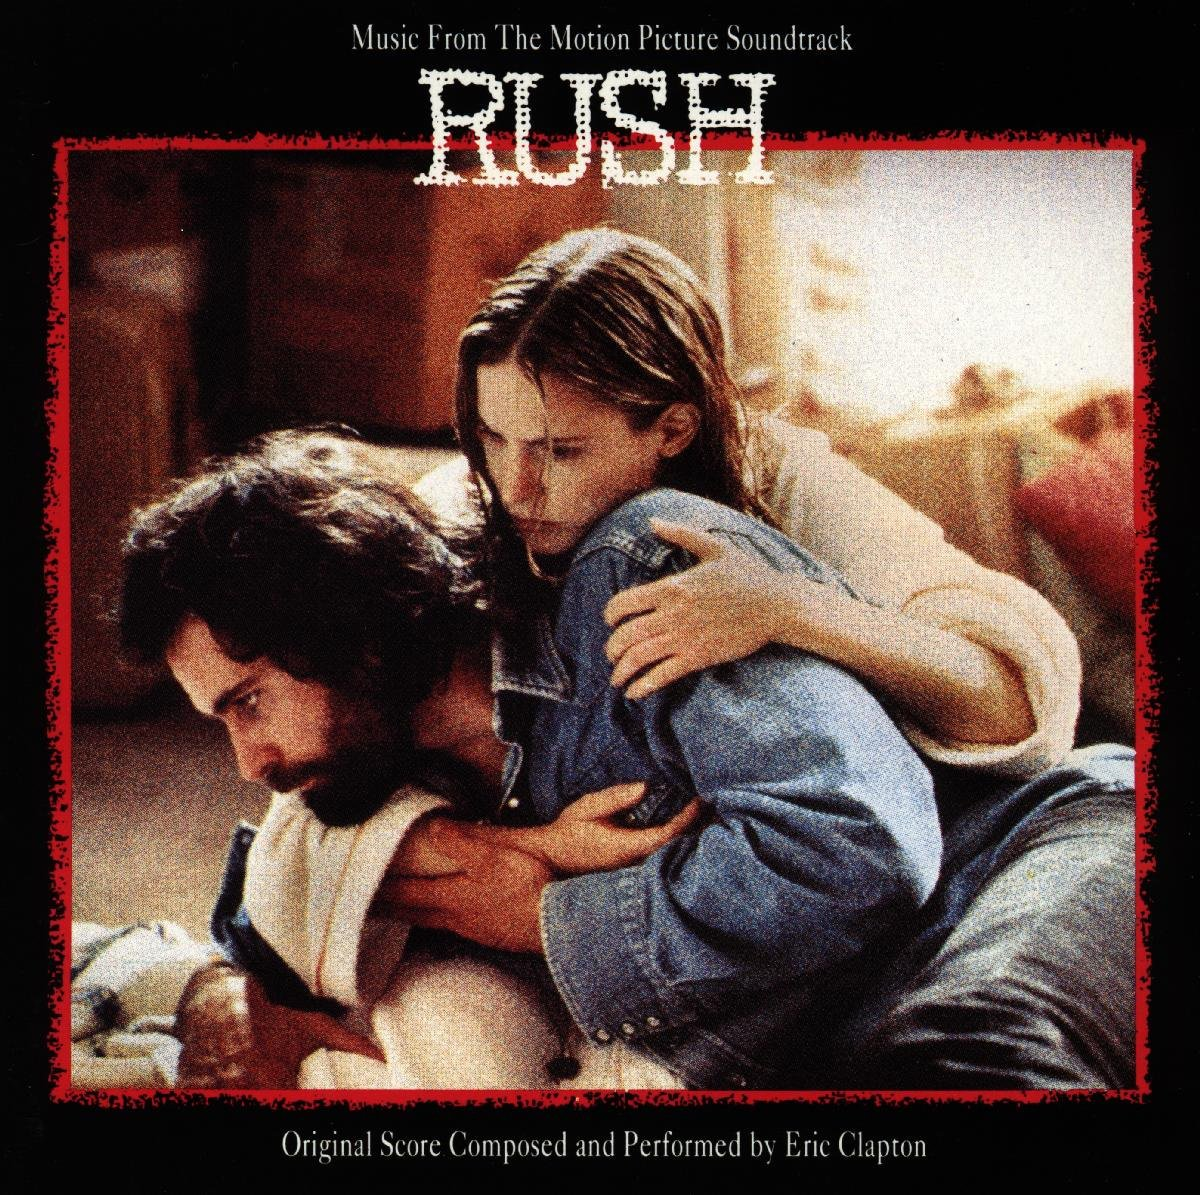 Eric Clapton 4 Lp Vinyl Box And Rush Soundtrack Out